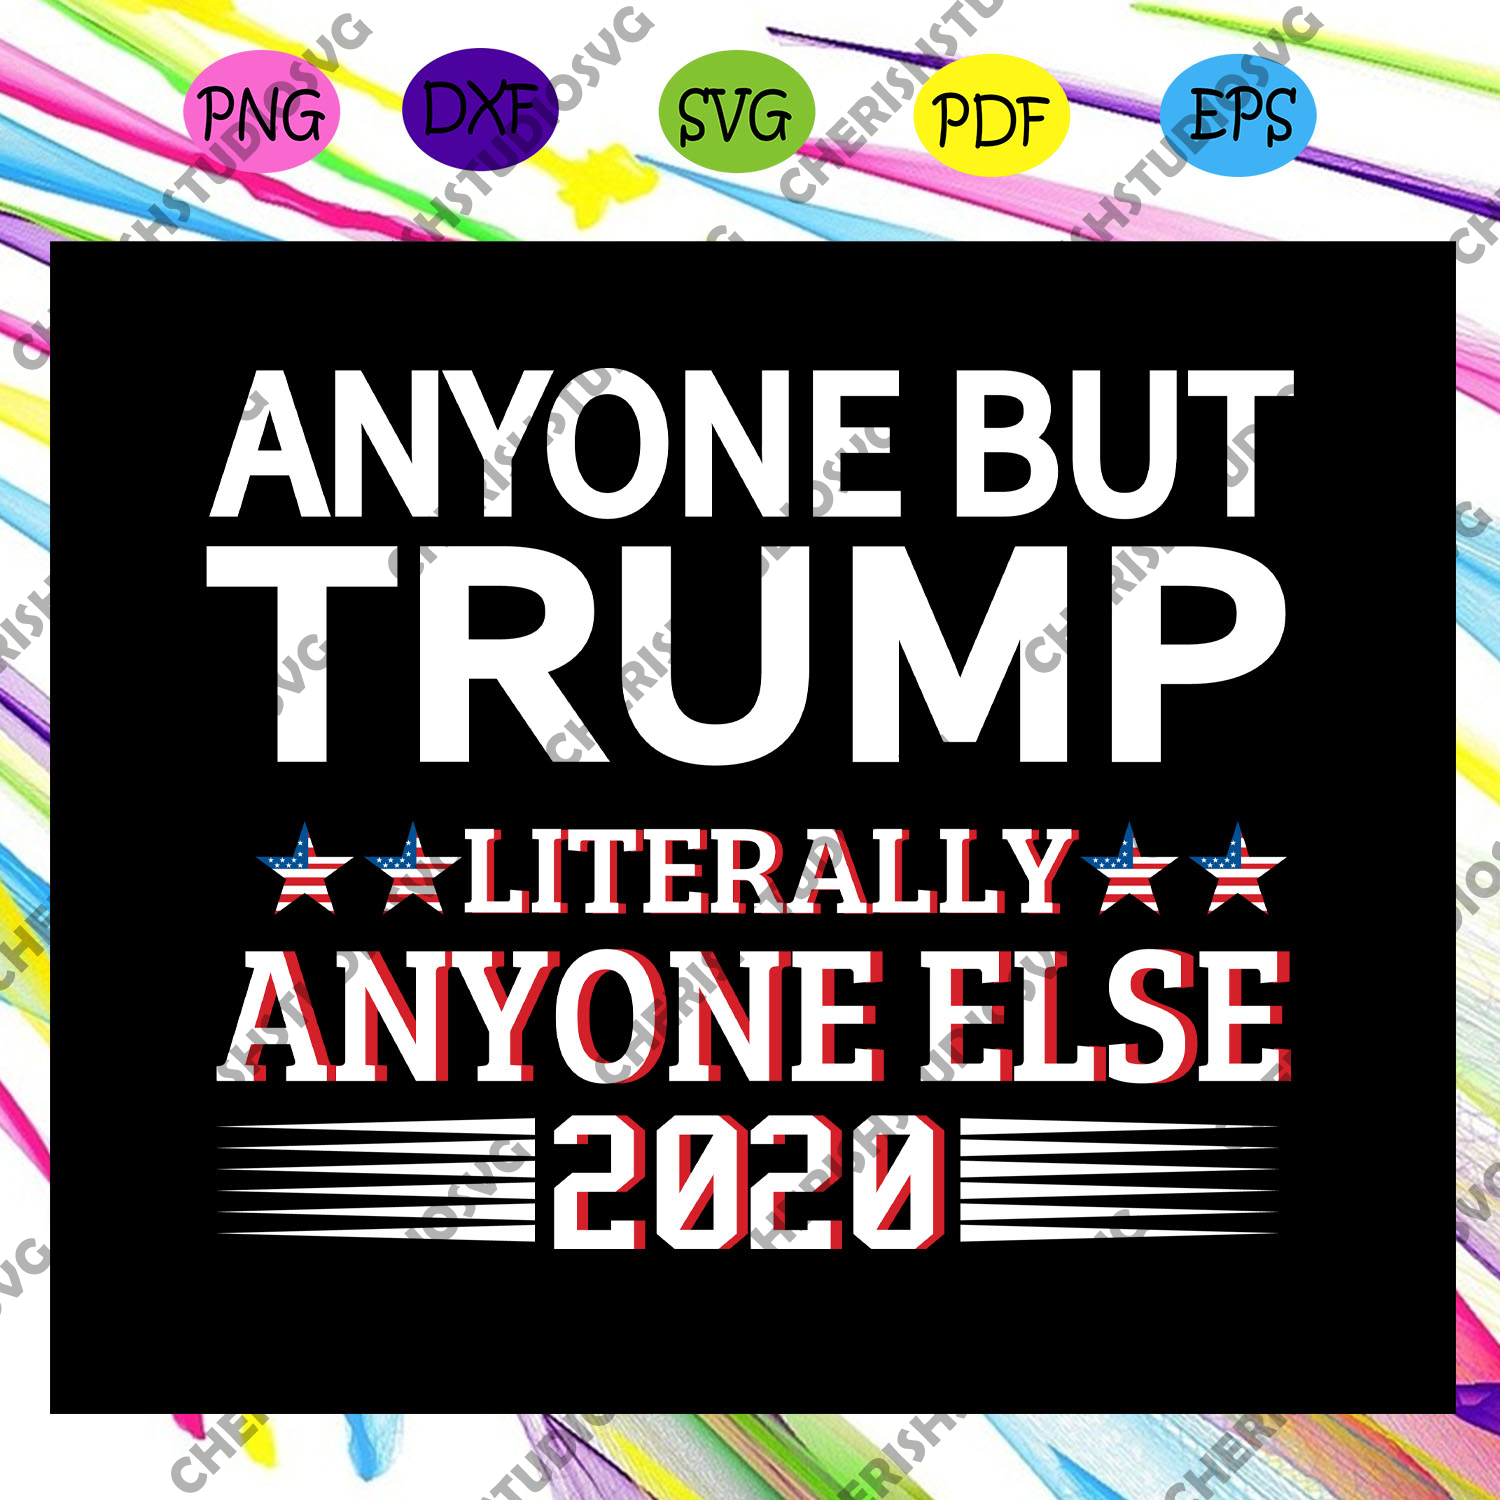 Anyone but trump literally anyone else 2020, America 4th Of July Patriotic , 4th Of July Svg, Fourth Of July Svg, Patriotic American,Independence Day , Files For Silhouette, Files For Cricut, SVG, DXF, EPS, PNG, Instant Download